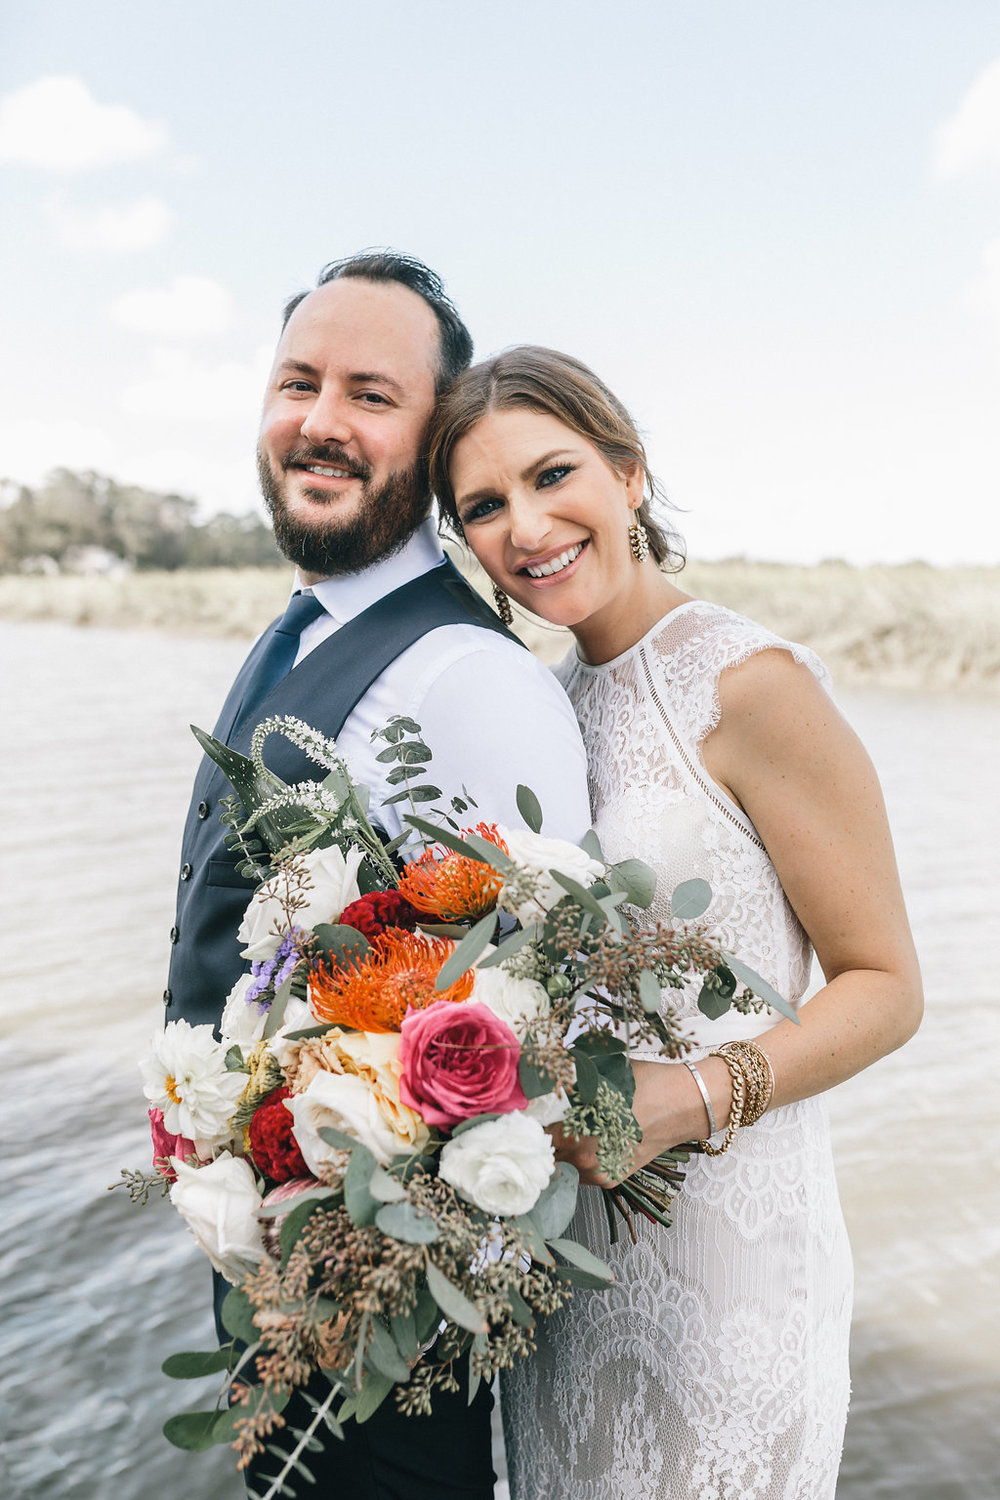 ivory-and-beau-bridal-boutique-james-and-adrienne-mackensey-alexander-photography-the-wyld-dock-bar-wedding-12.jpg